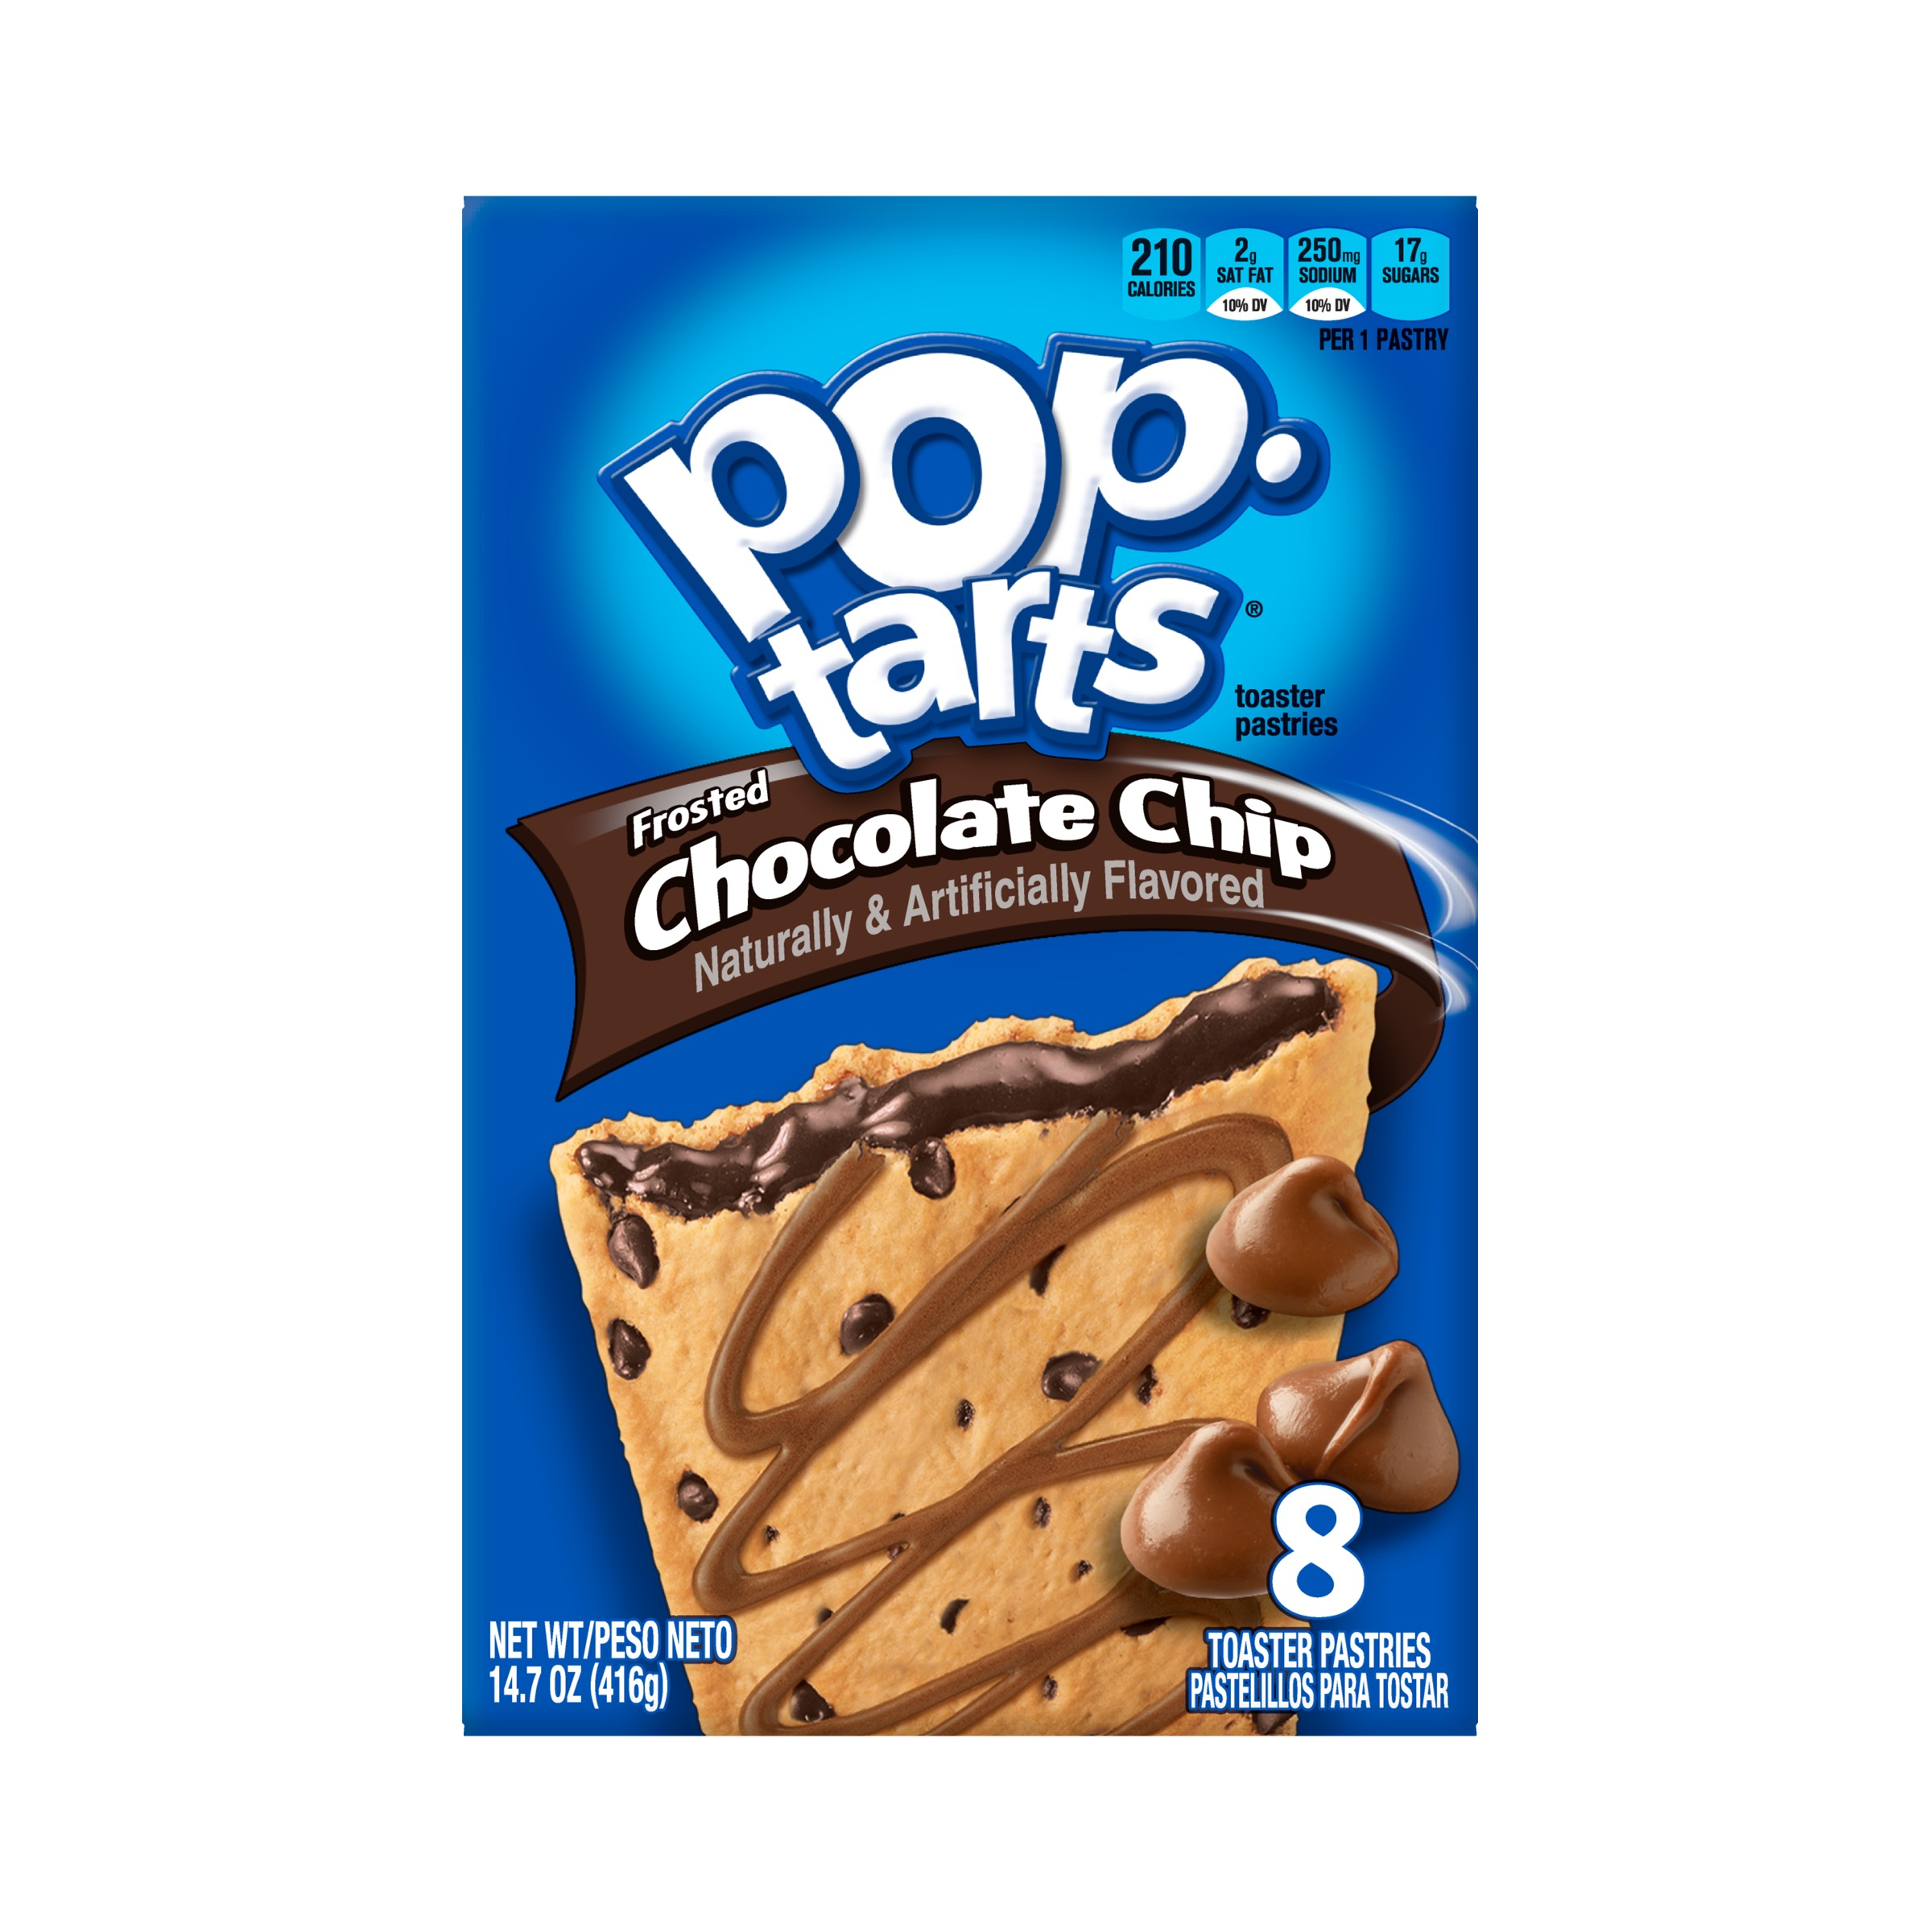 Kellogg's Pop-Tarts Frosted Chocolate Chip Toaster Pastries